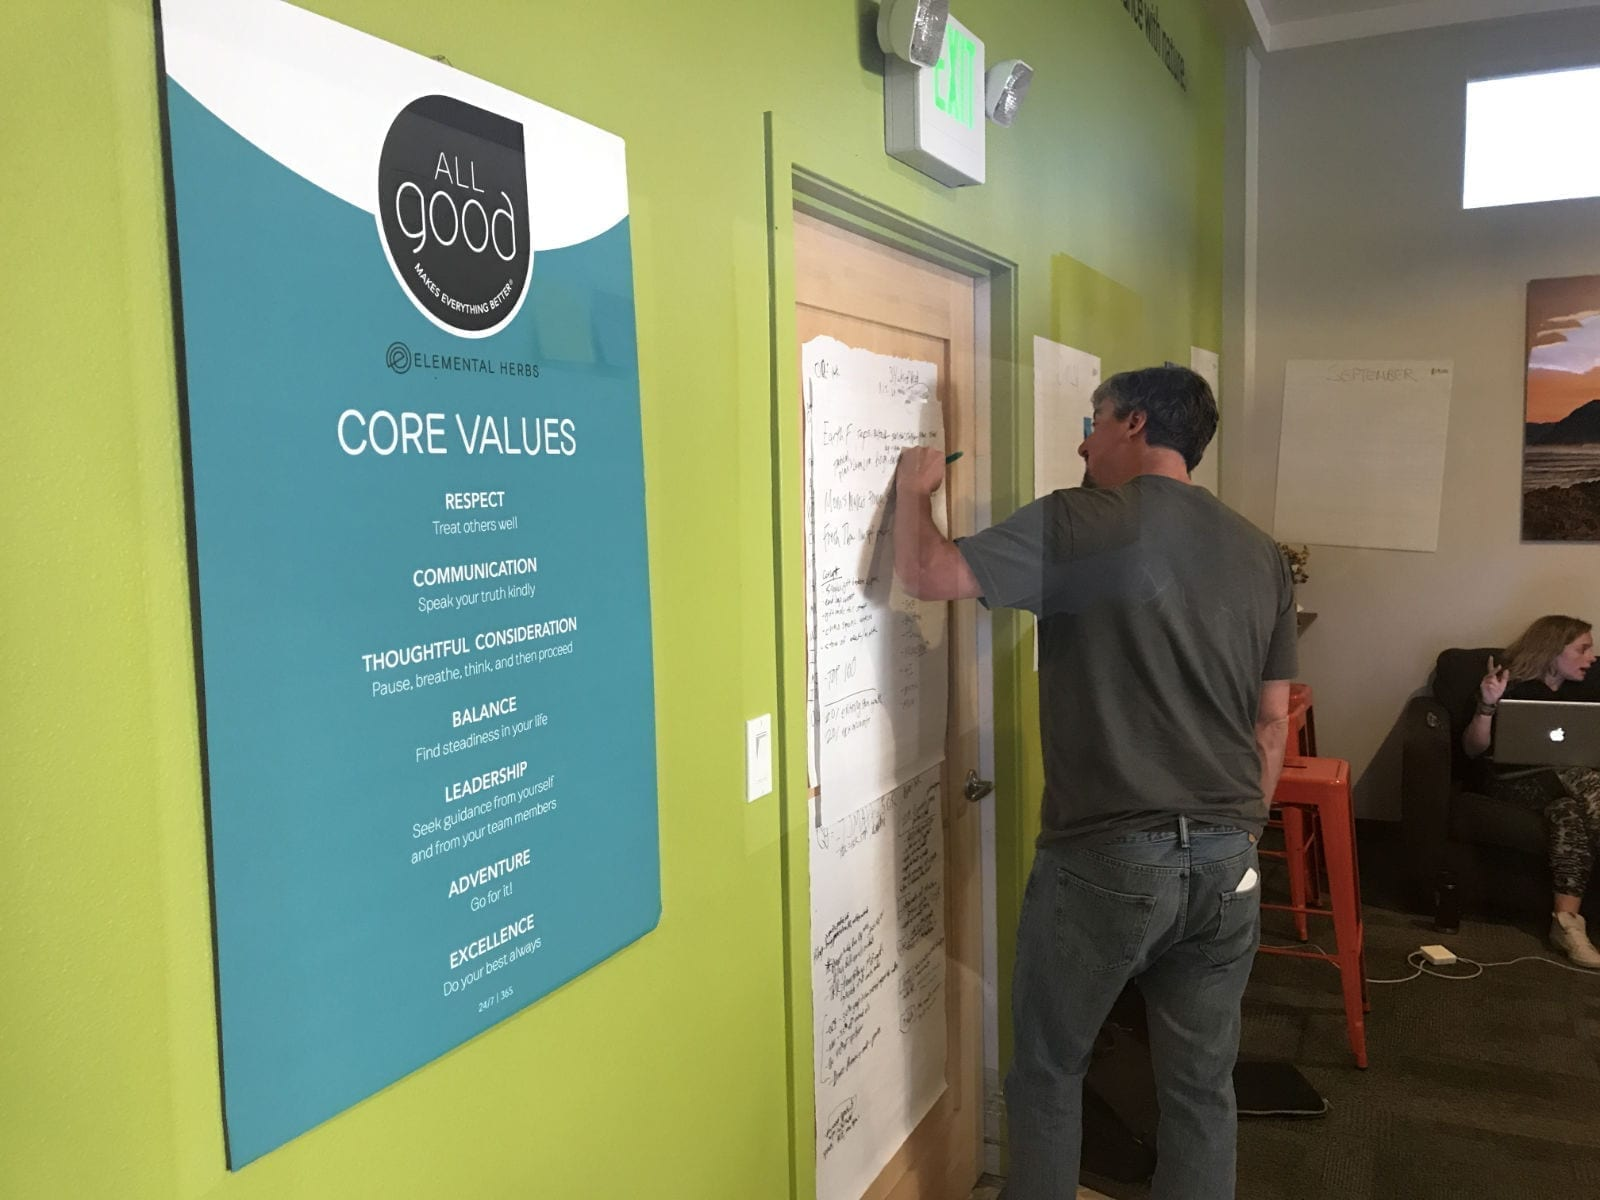 A man writes on paper with a poster of company values next to him on a bright green wall.